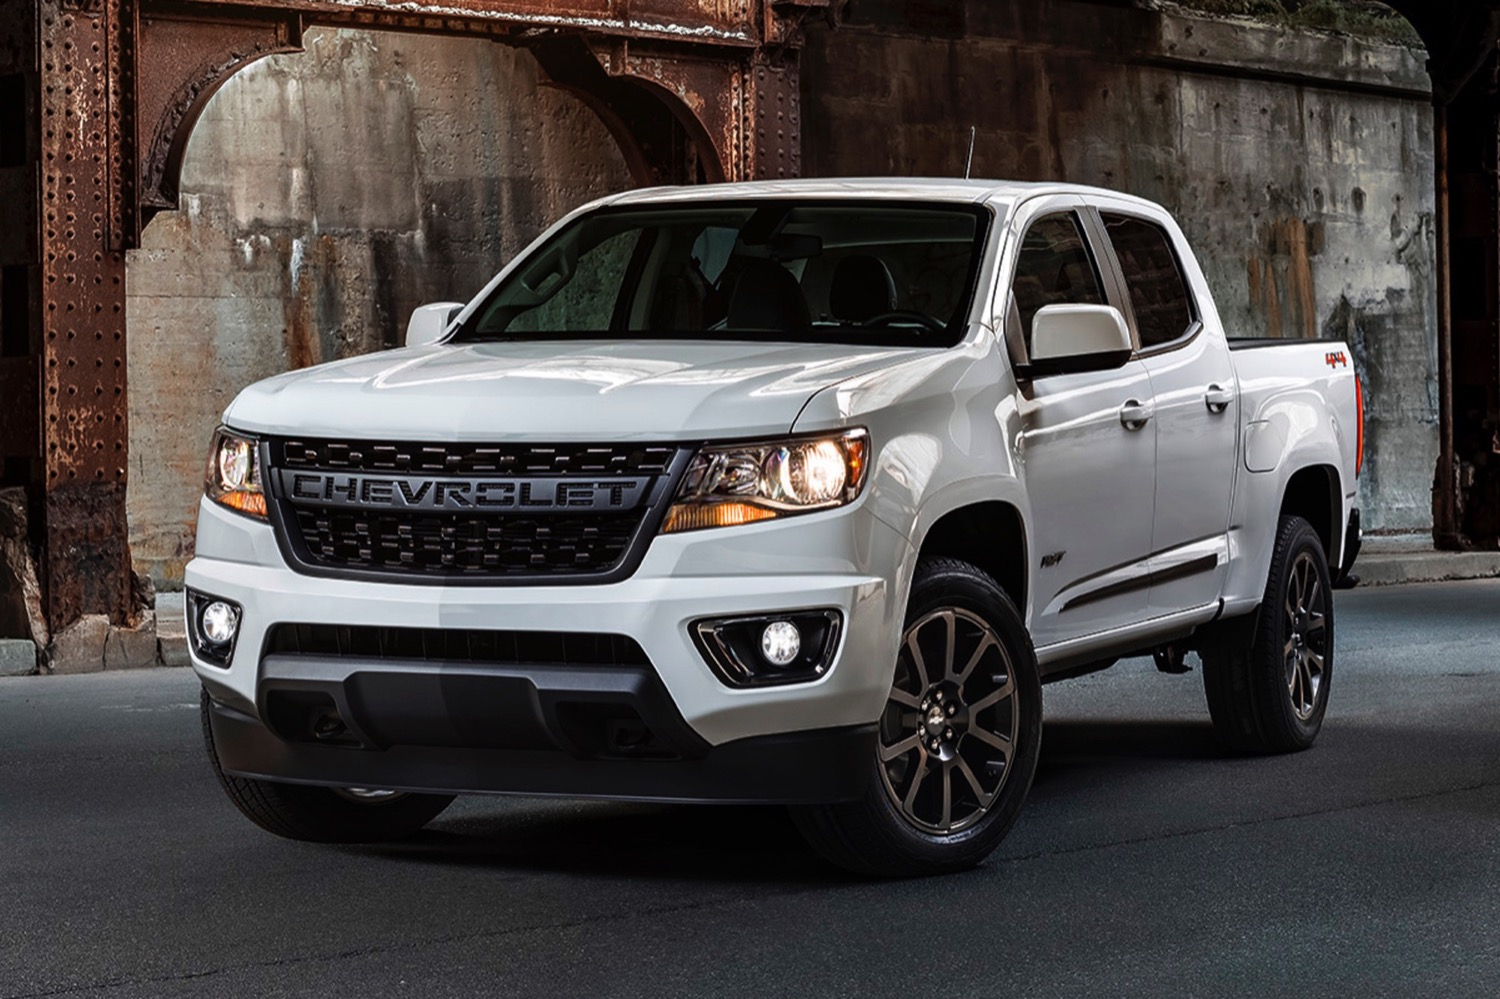 Current Chevrolet Colorado To Soldier On With No Refresh 2021 Chevy Colorado Z71 Interior, Issues, Incentives